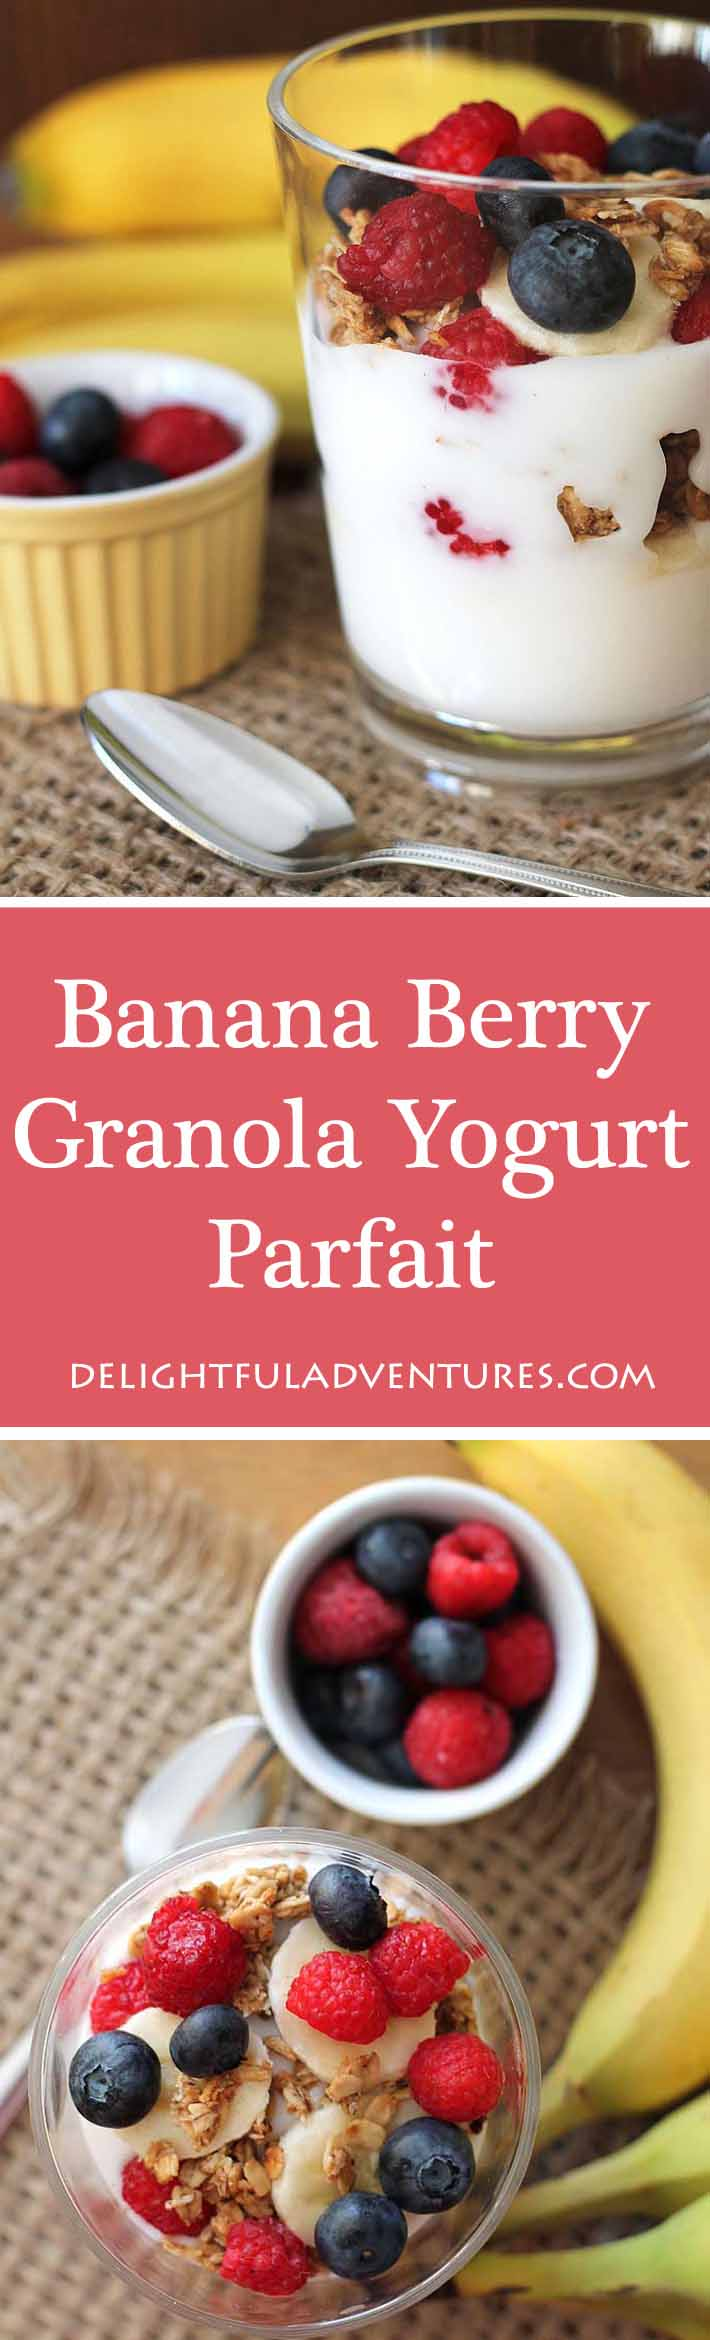 A Banana Berry Granola Yogurt Parfait is just what you need to start your day or to keep you going when you're looking for a healthy afternoon snack. #parfait #yogurtparfait #veganbreakfast #breakfastideas #berryparfait